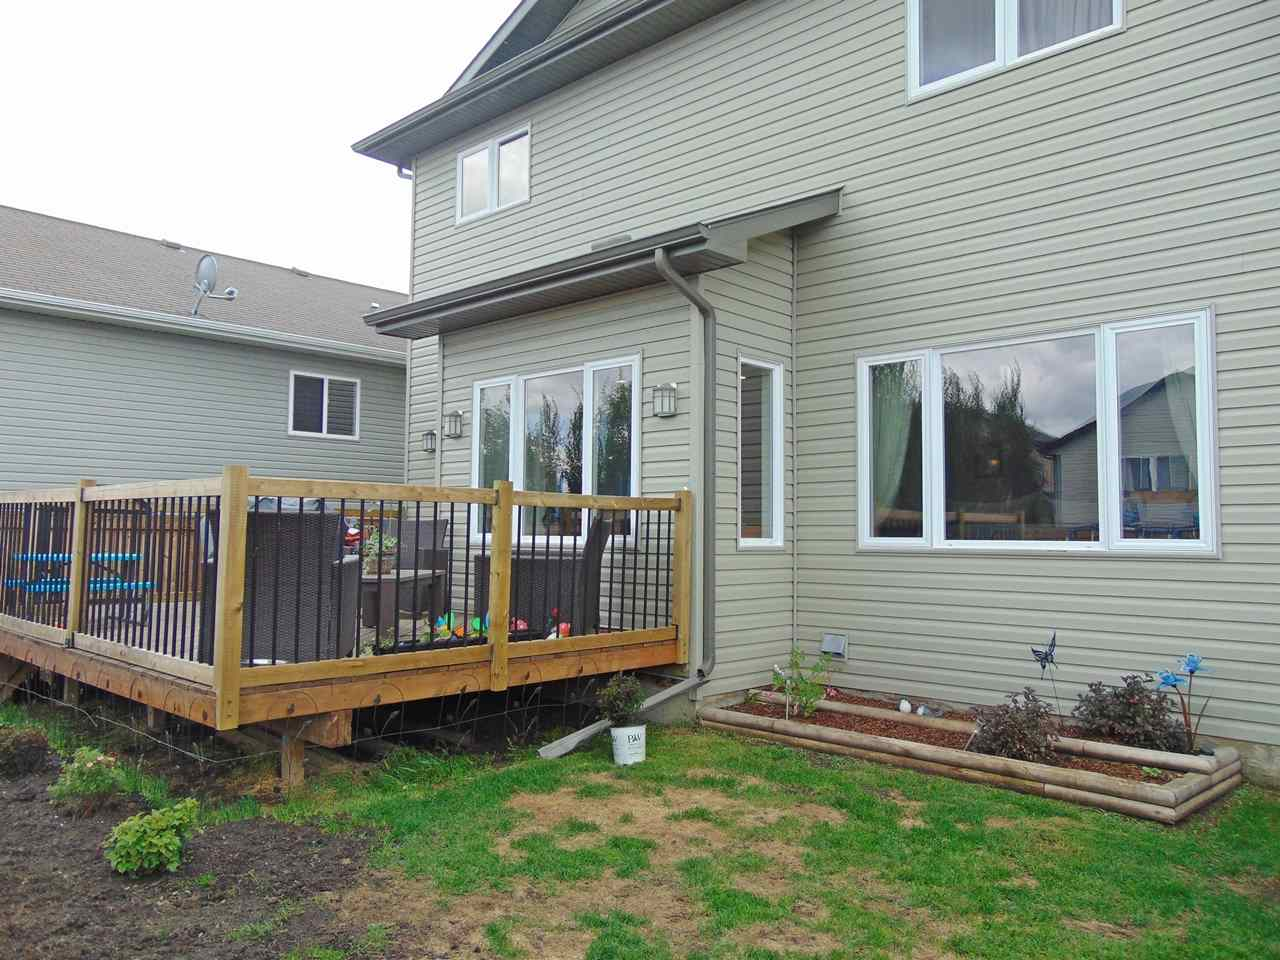 Photo 25: 5220 39 Avenue: Gibbons House for sale : MLS(r) # E4066111